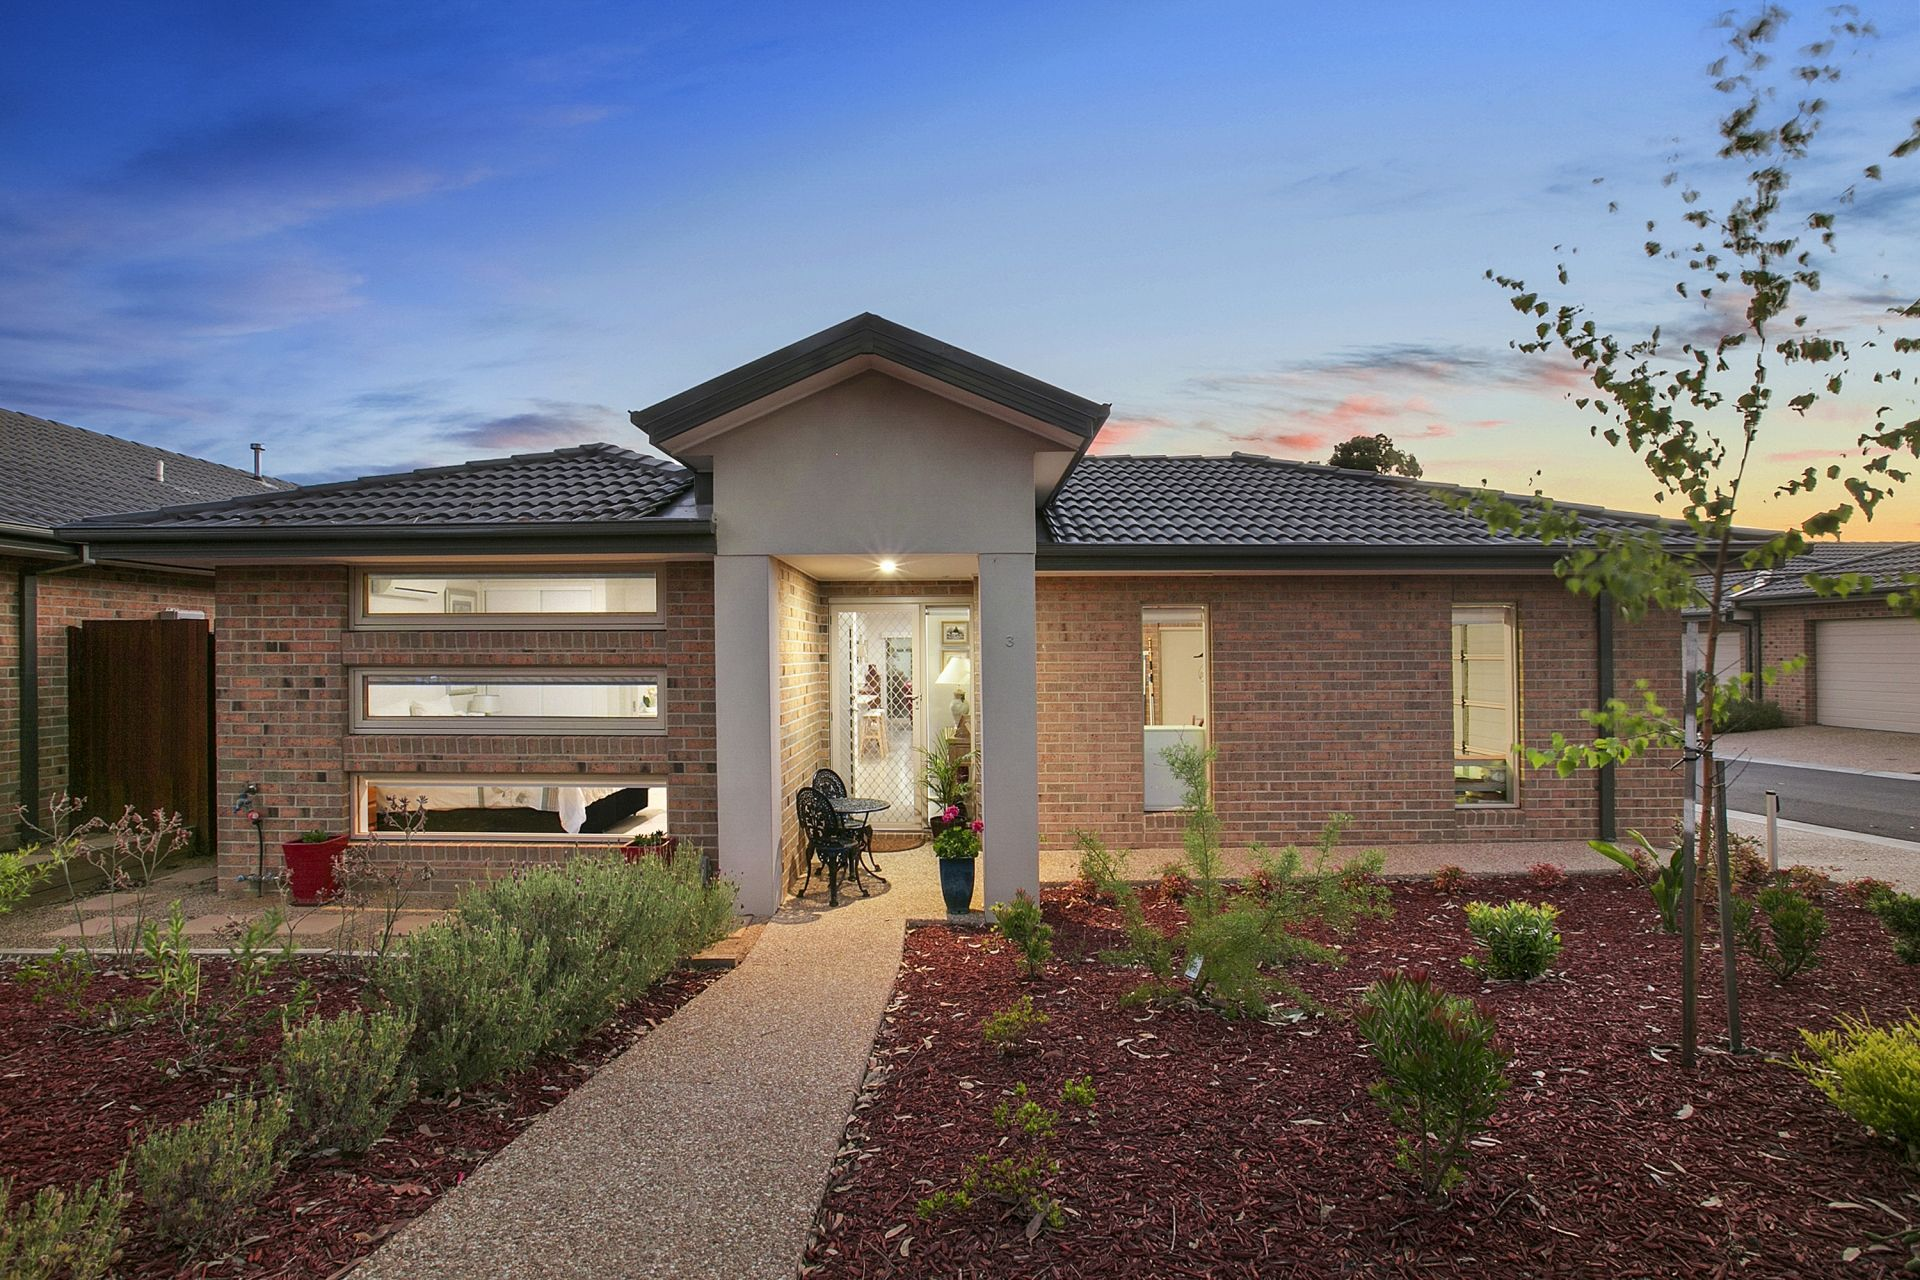 3/70 Harrap Road, MOUNT MARTHA, VIC, 3934 - Image